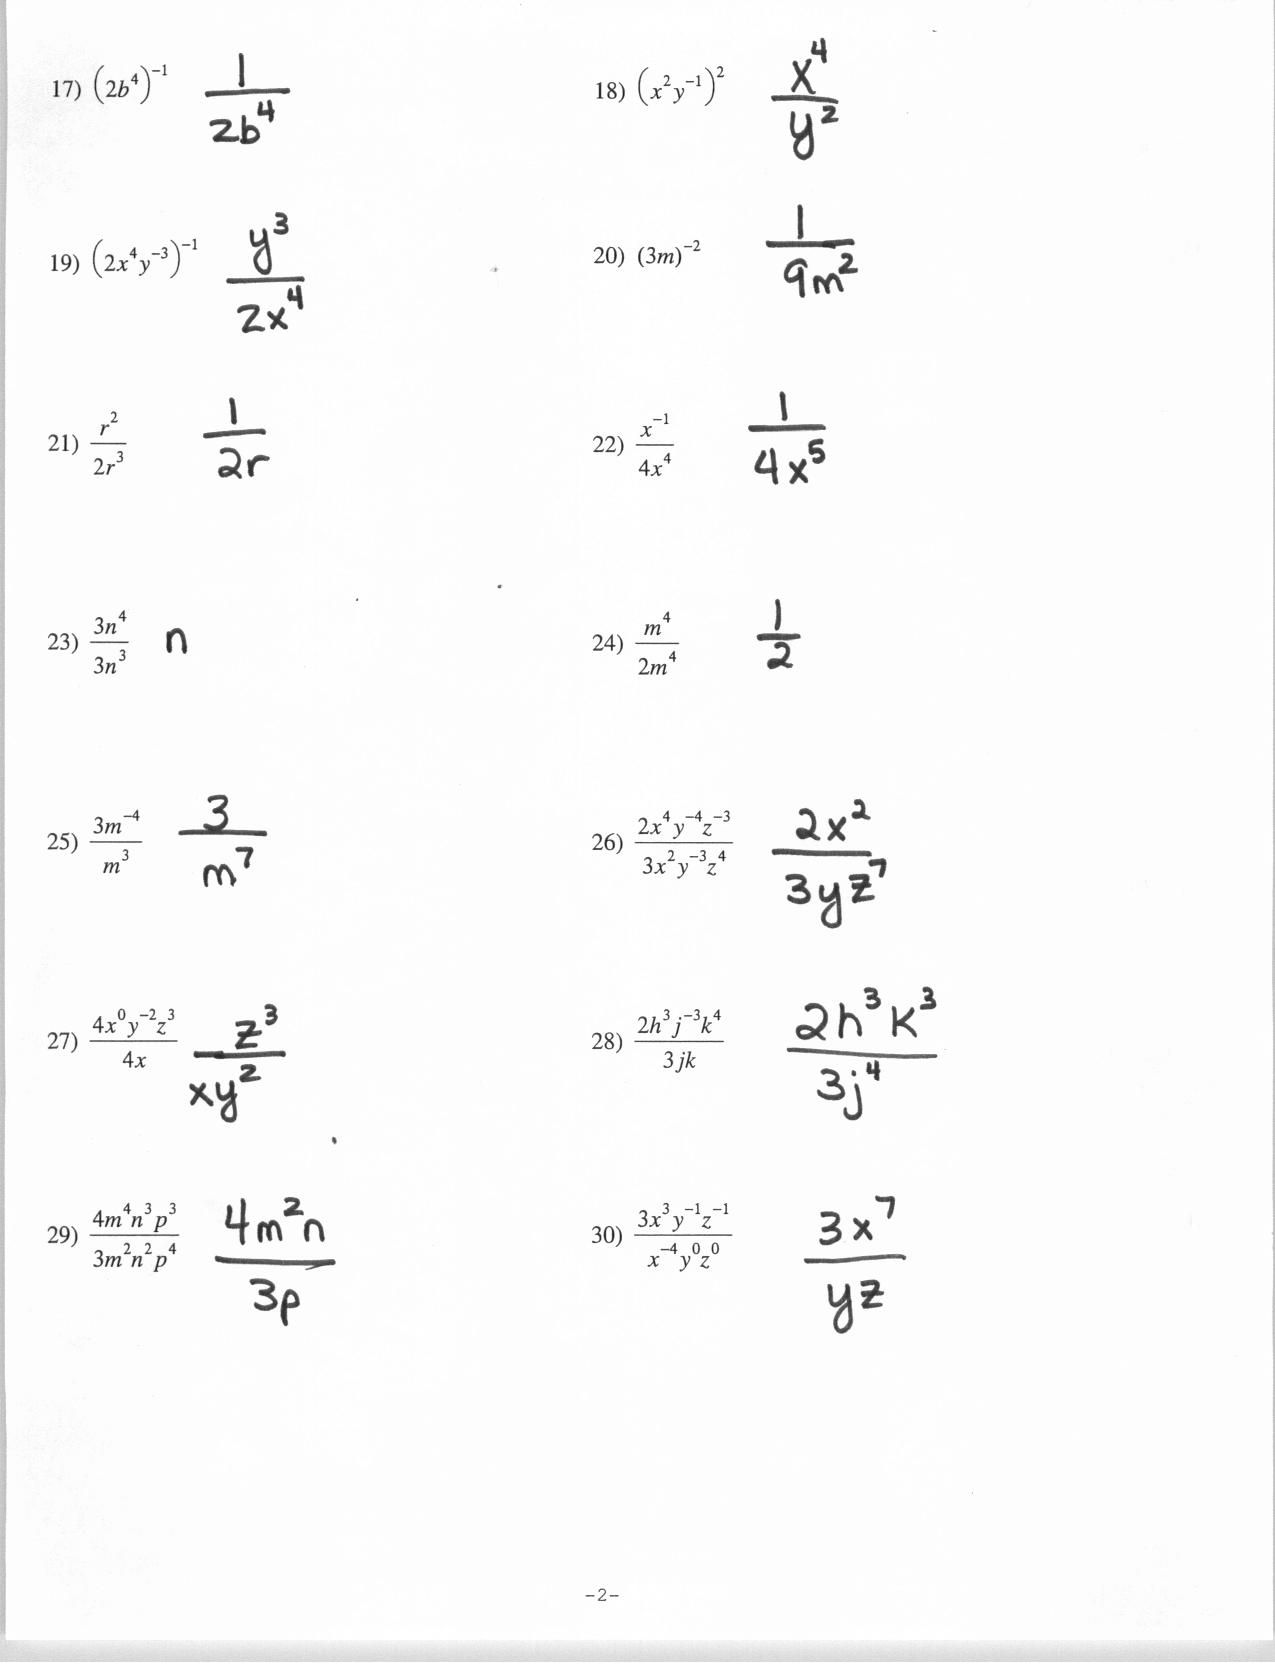 Printables Exponents Worksheets With Answers 1000 images about algebra on pinterest mobile app equations and worksheets